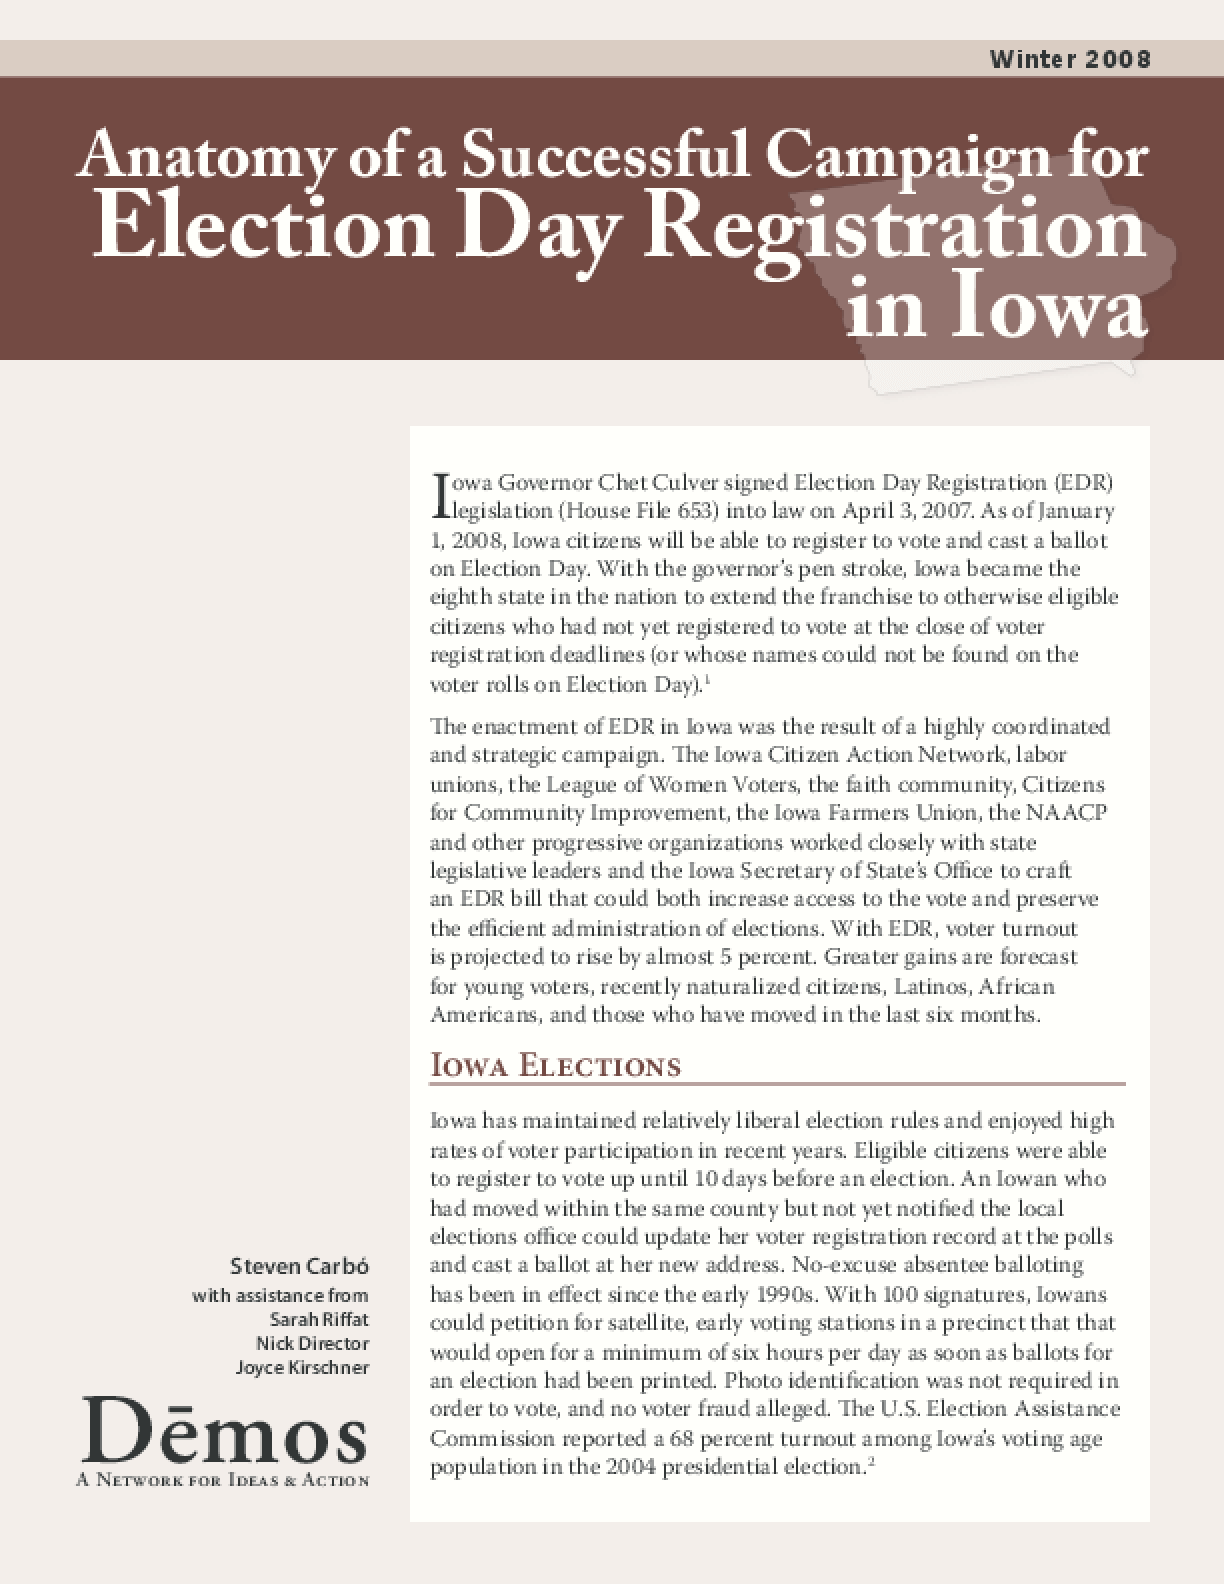 Anatomy of a Successful Campaign for Election Day Registration in Iowa